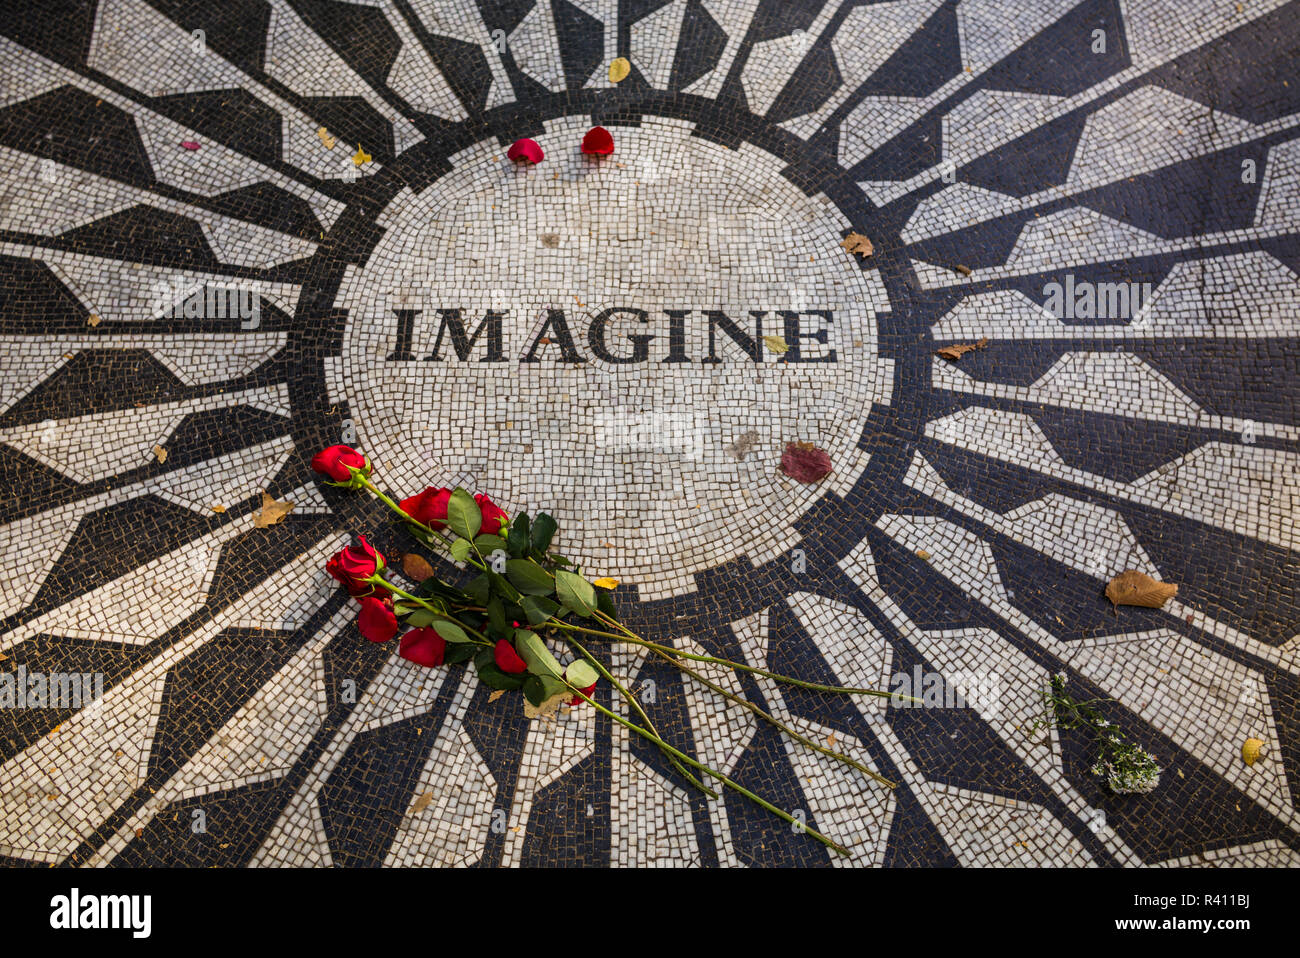 USA, New York City, Central Park, Strawberry Fields, memorial to John Lennon. Editorial Use Only - Stock Image